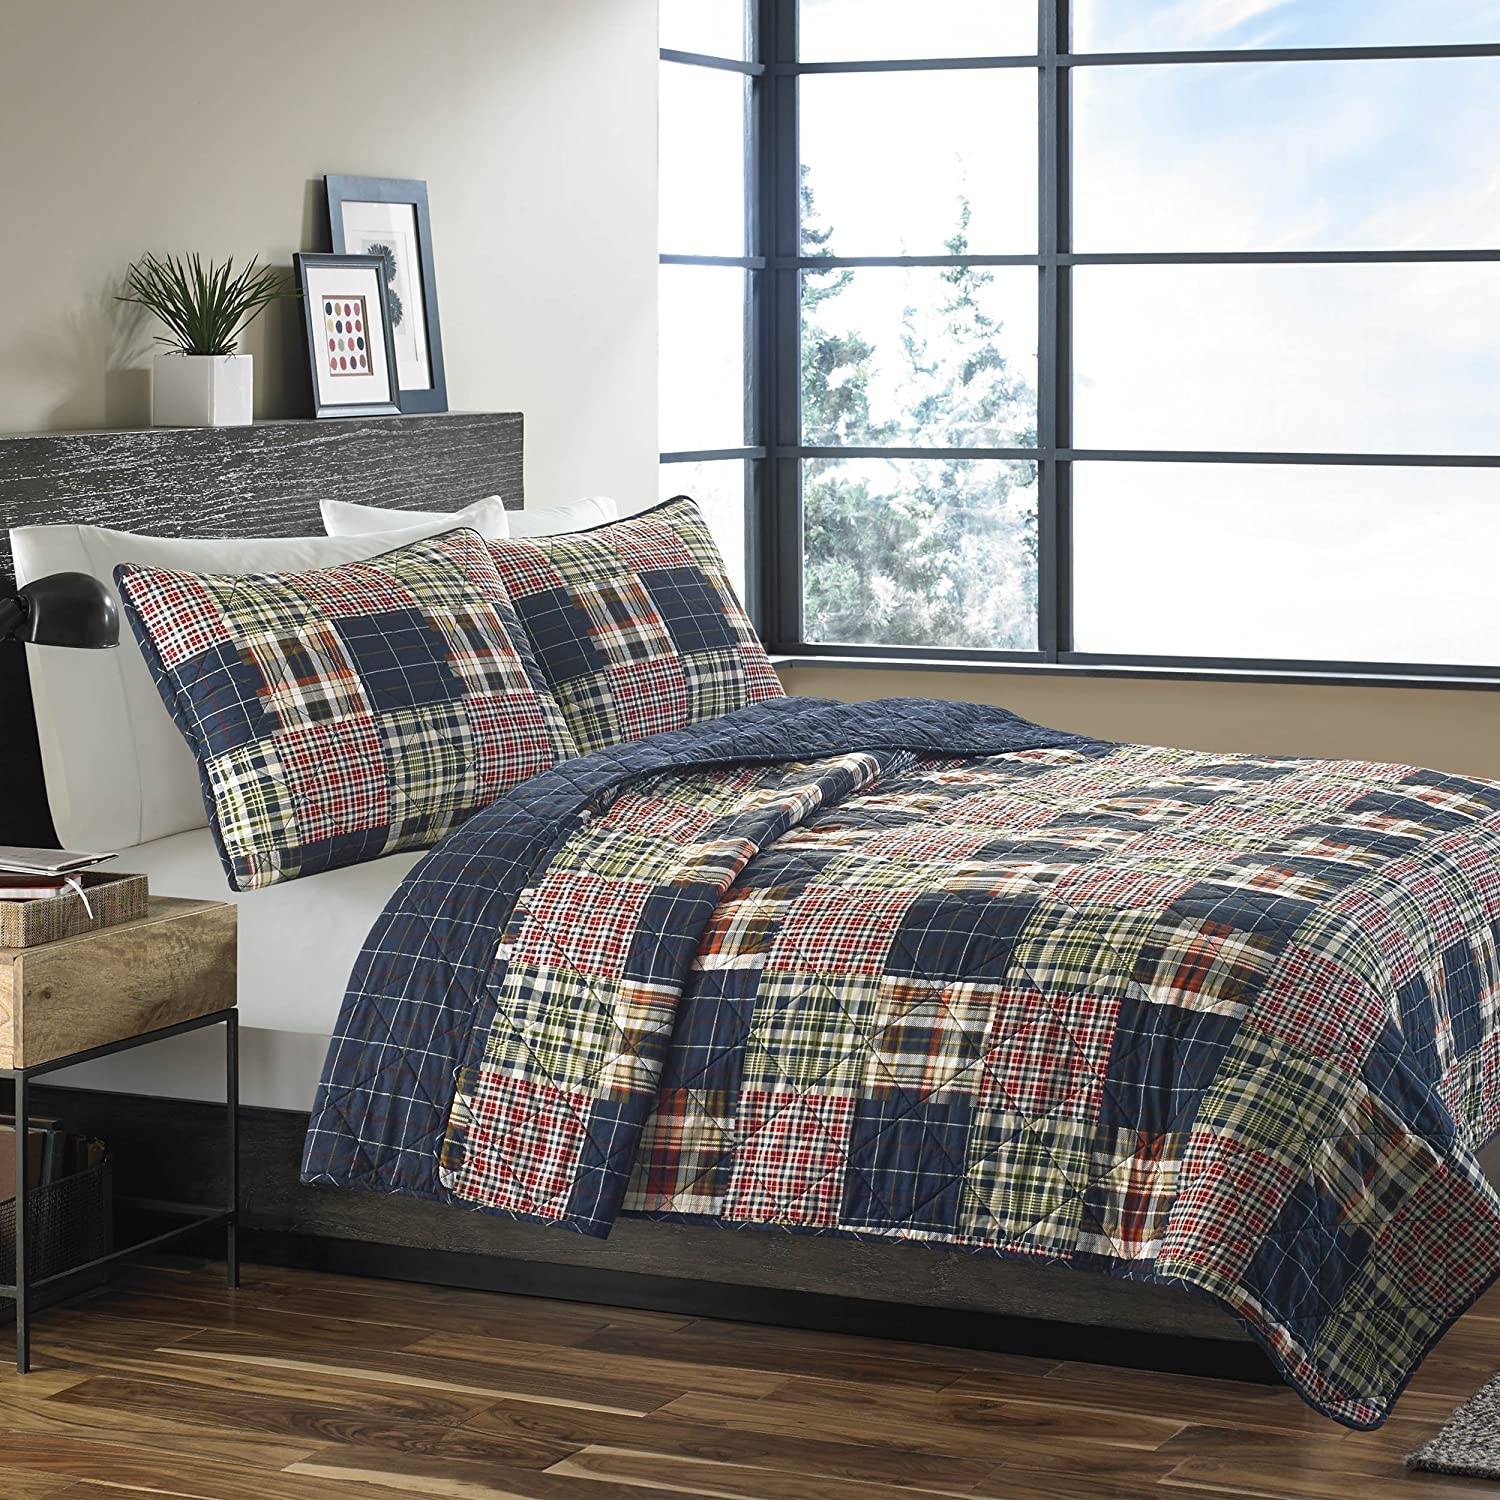 Eddie Bauer 215680 Madrona Cotton 5 Piece Daybed Cover Set Revman International